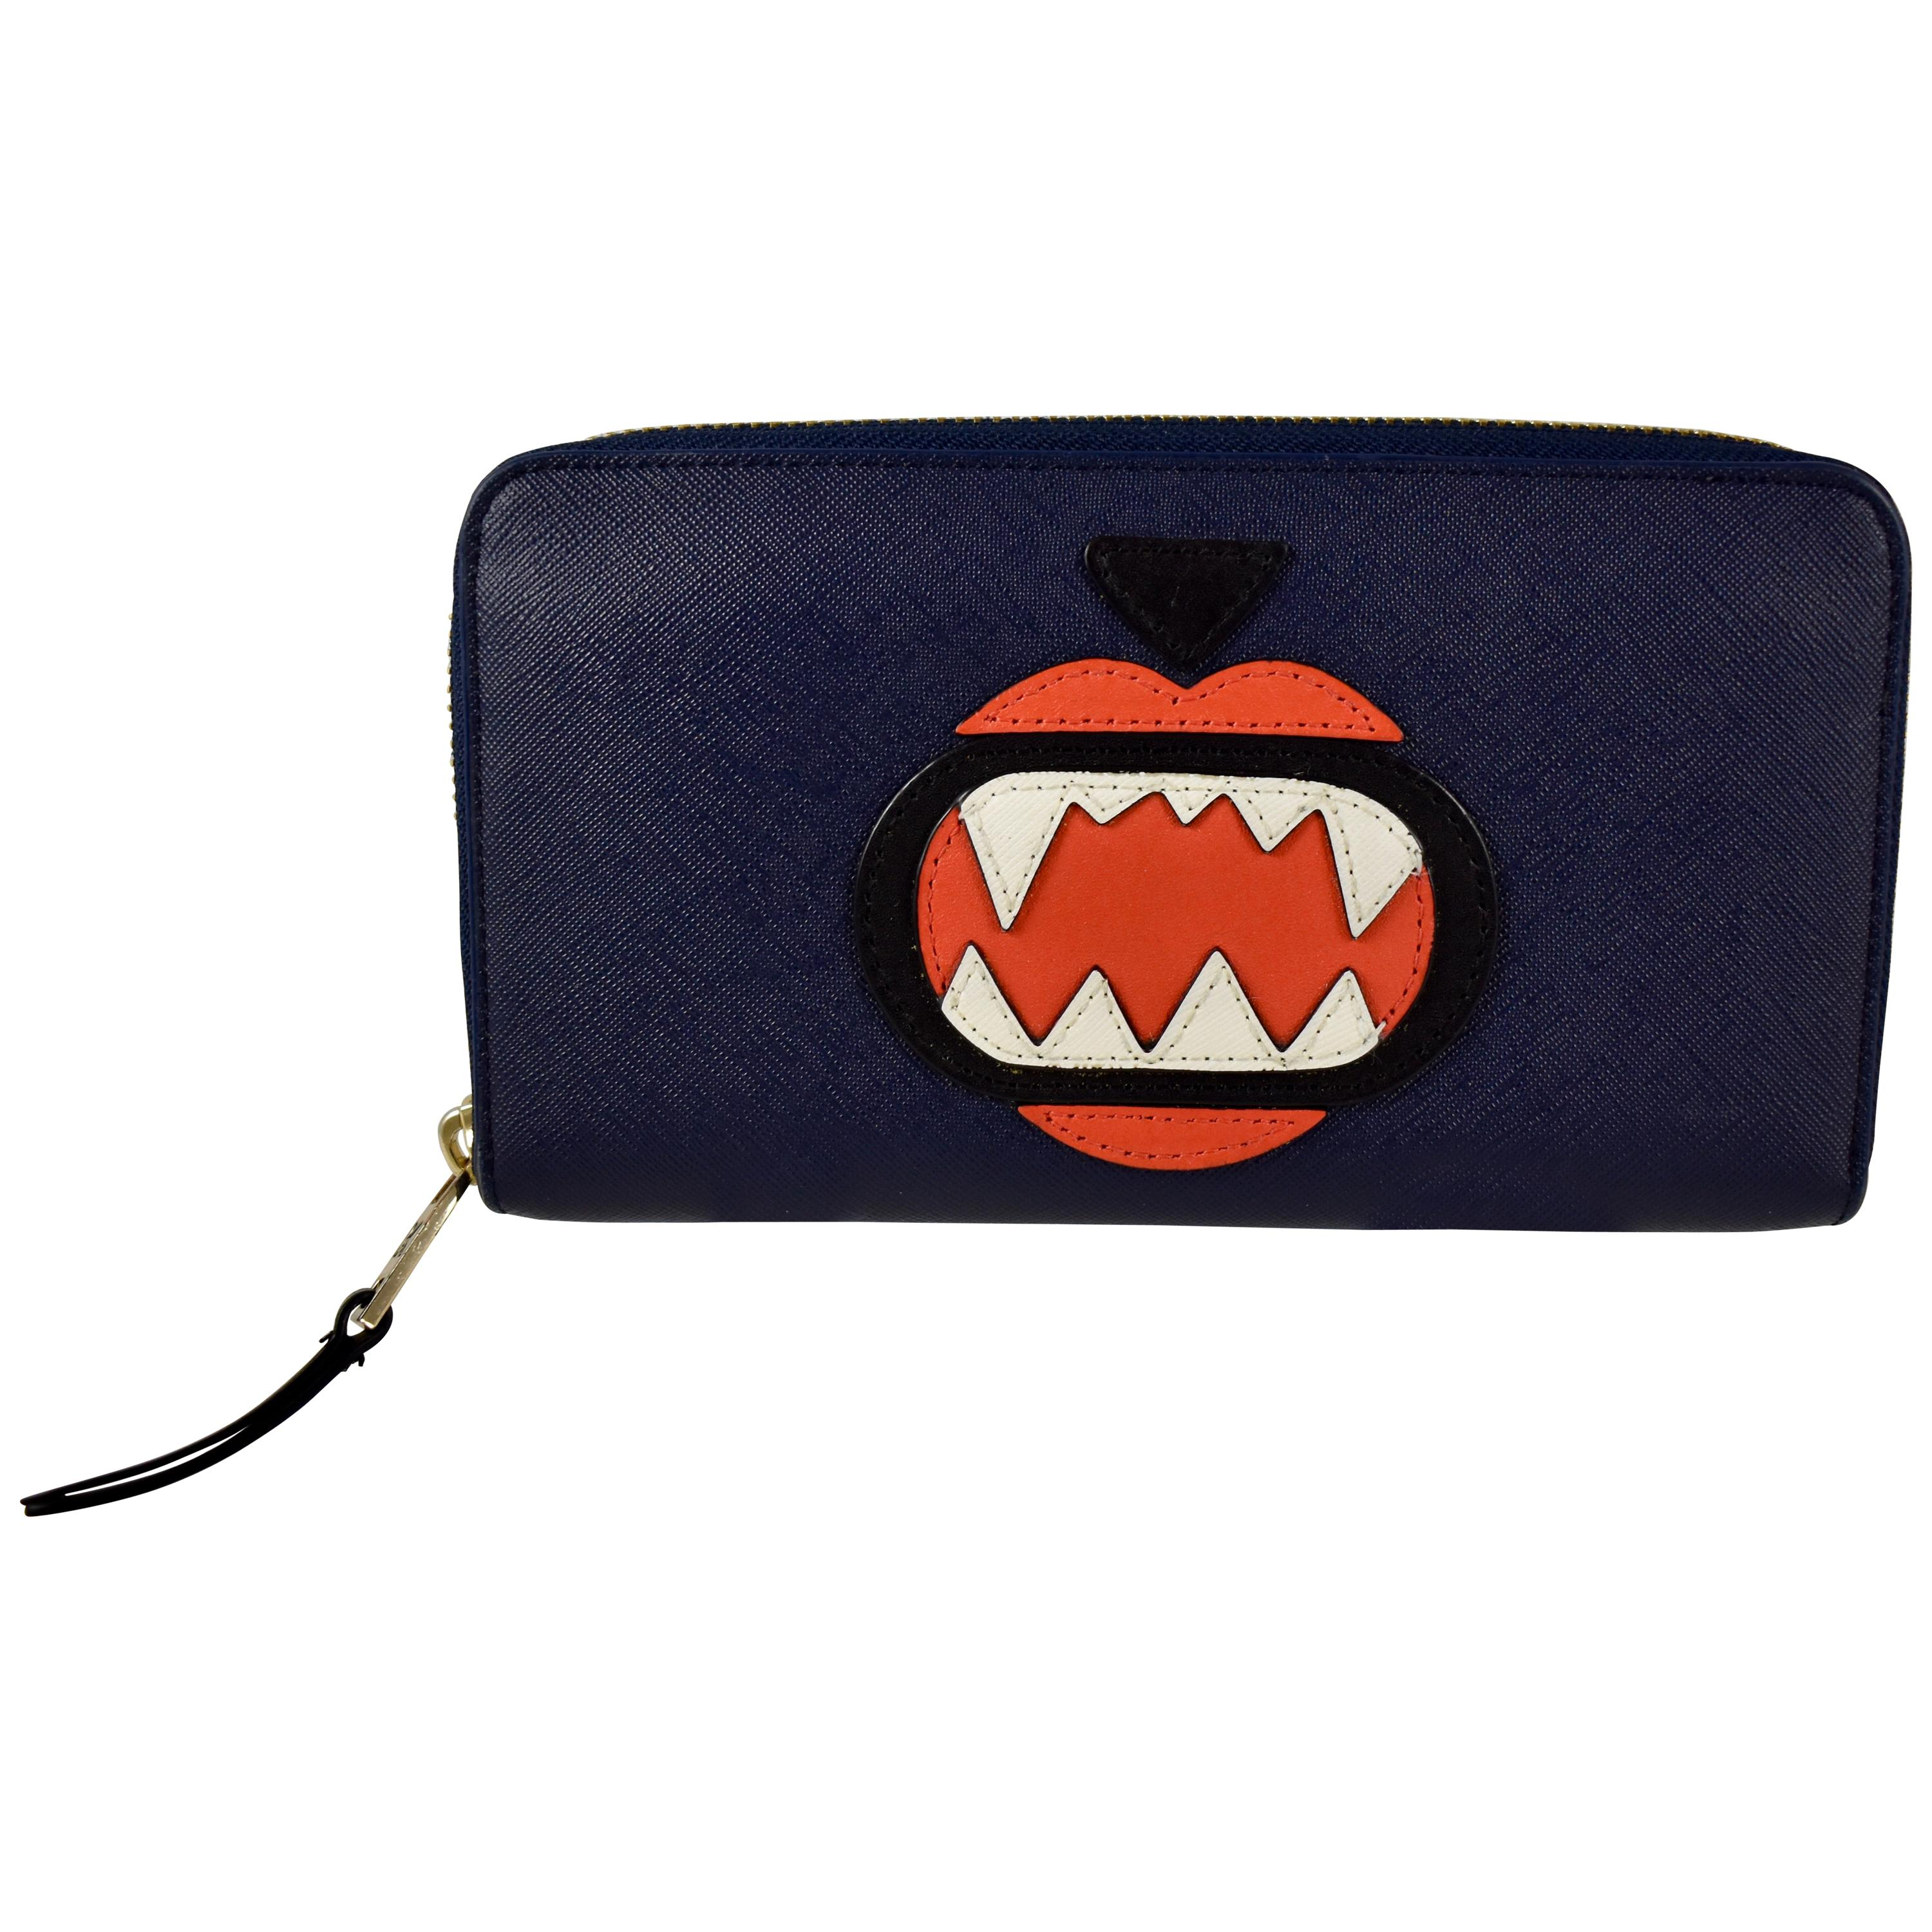 Karl Lagerfeld Monster Choupette Navy Blue Zippered Leather Continental Wallet